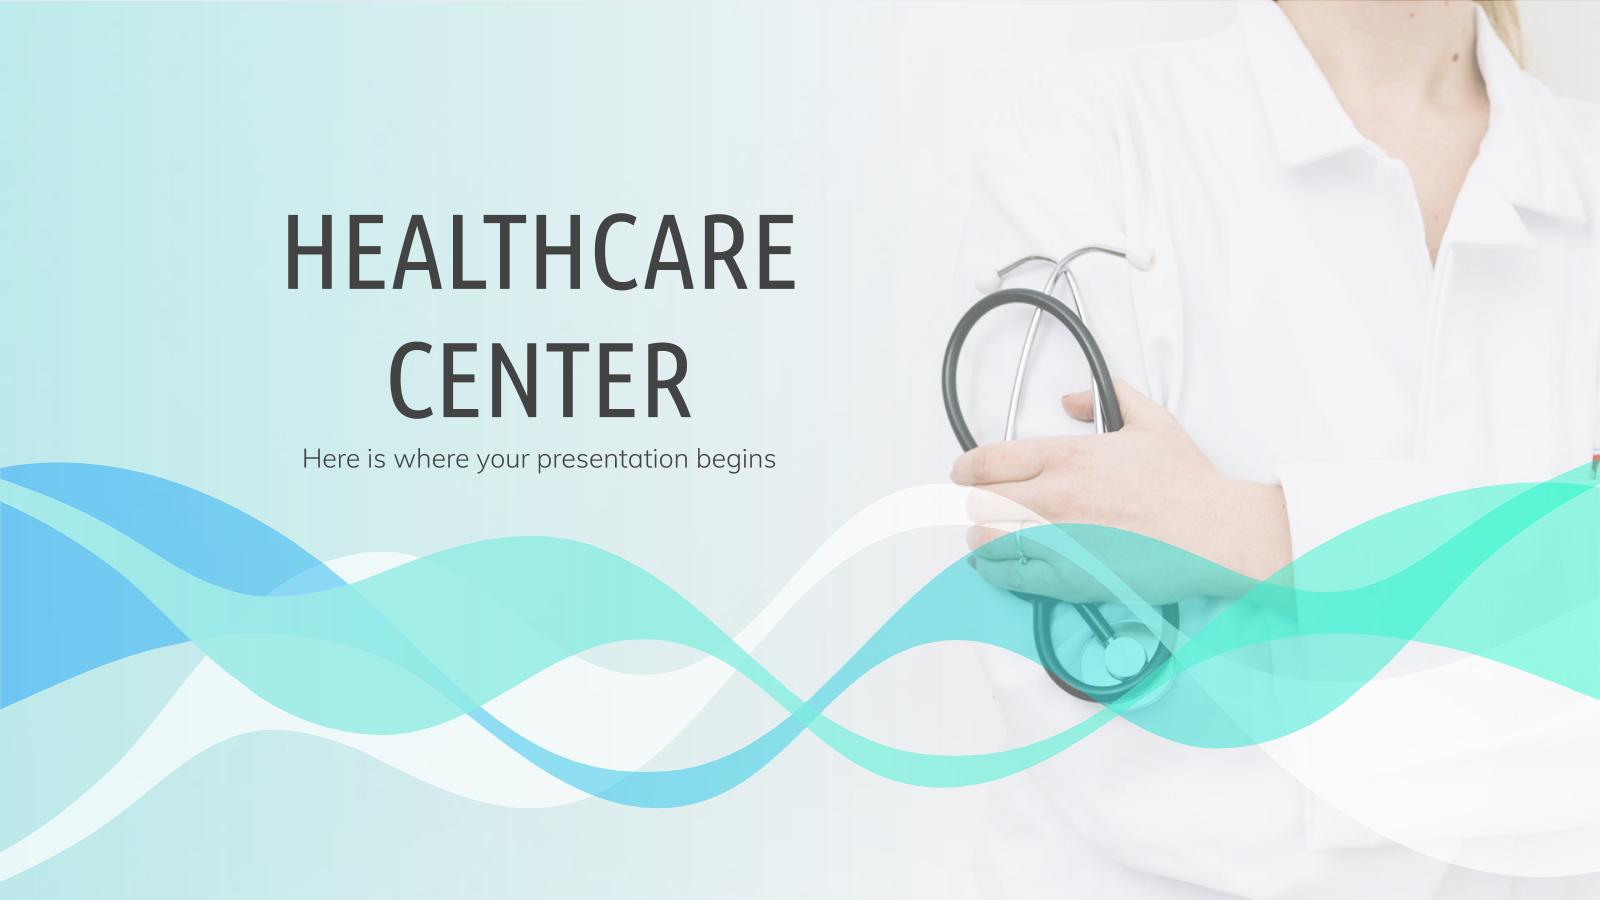 Healthcare Center - Free Presentation Template For Google With Regard To Free Nursing Powerpoint Templates